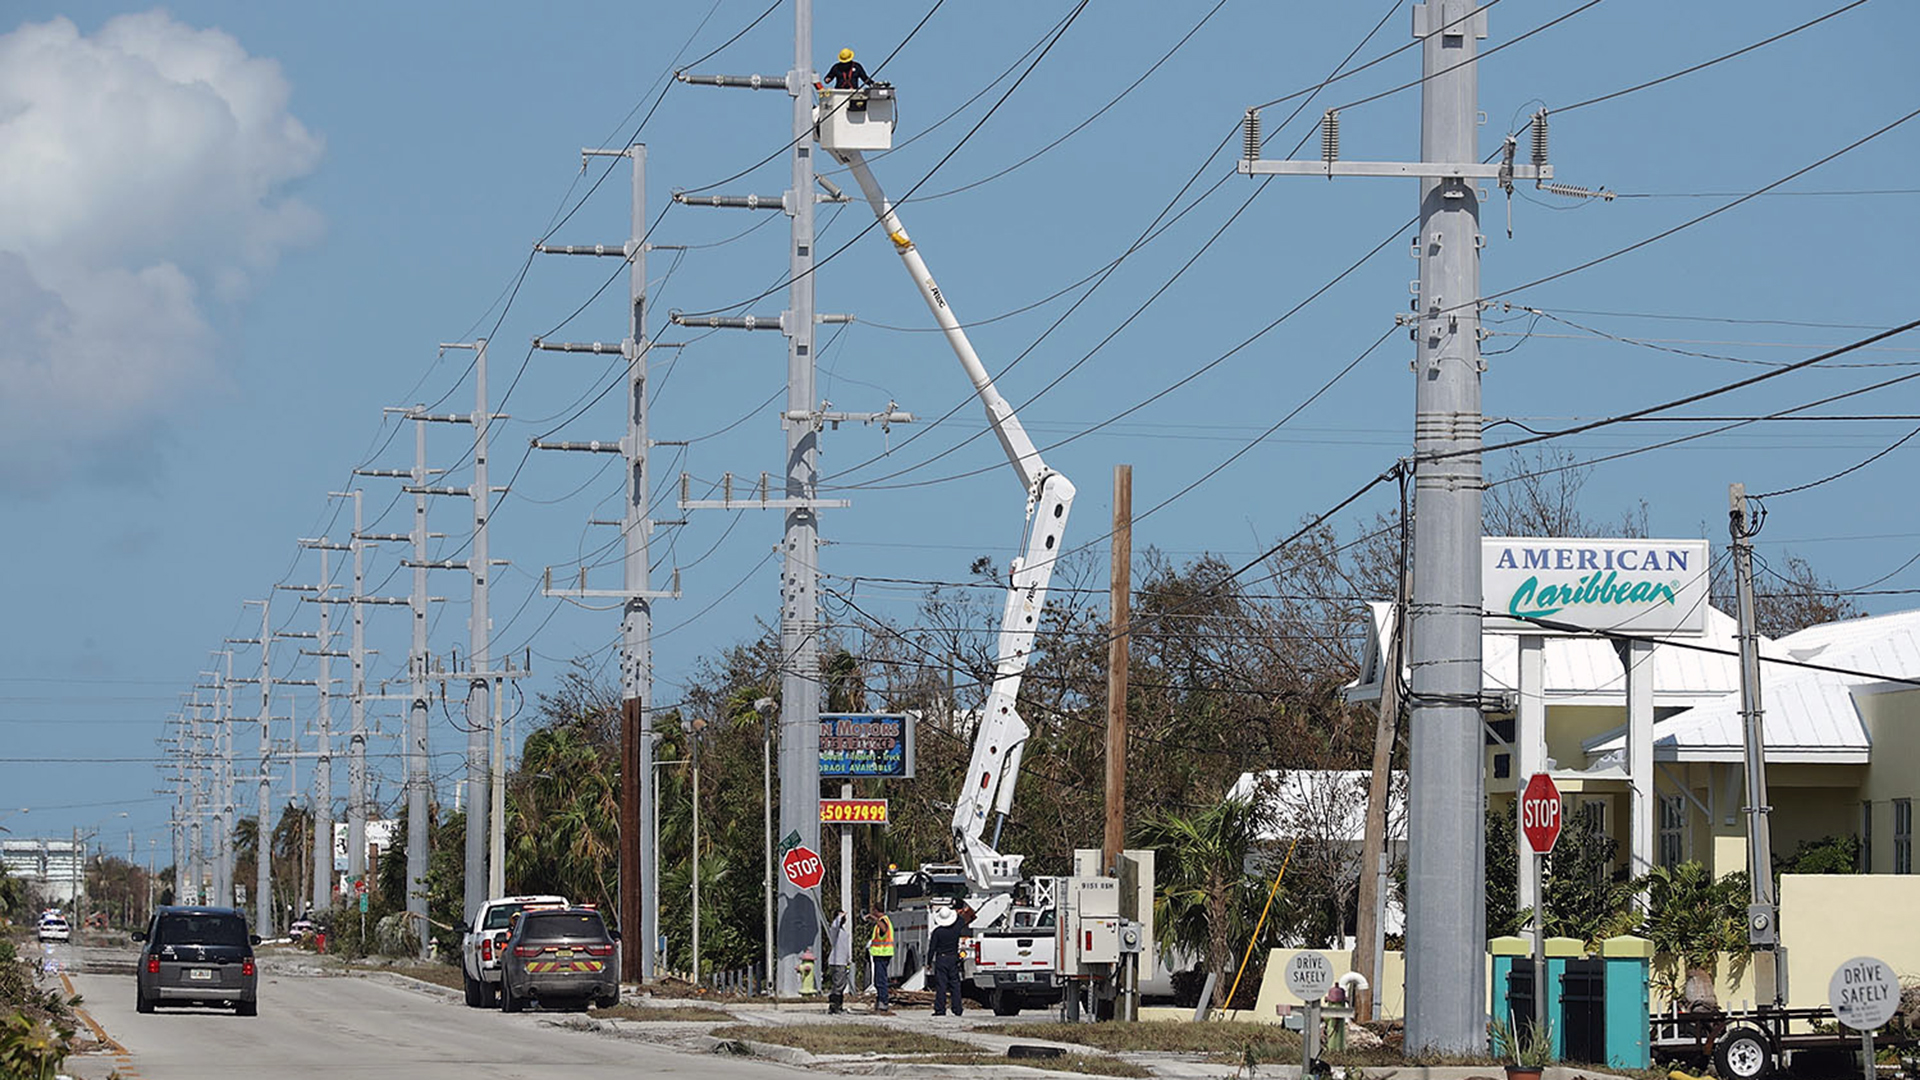 Florida eletrical workers after Irma-159532.jpg33552638